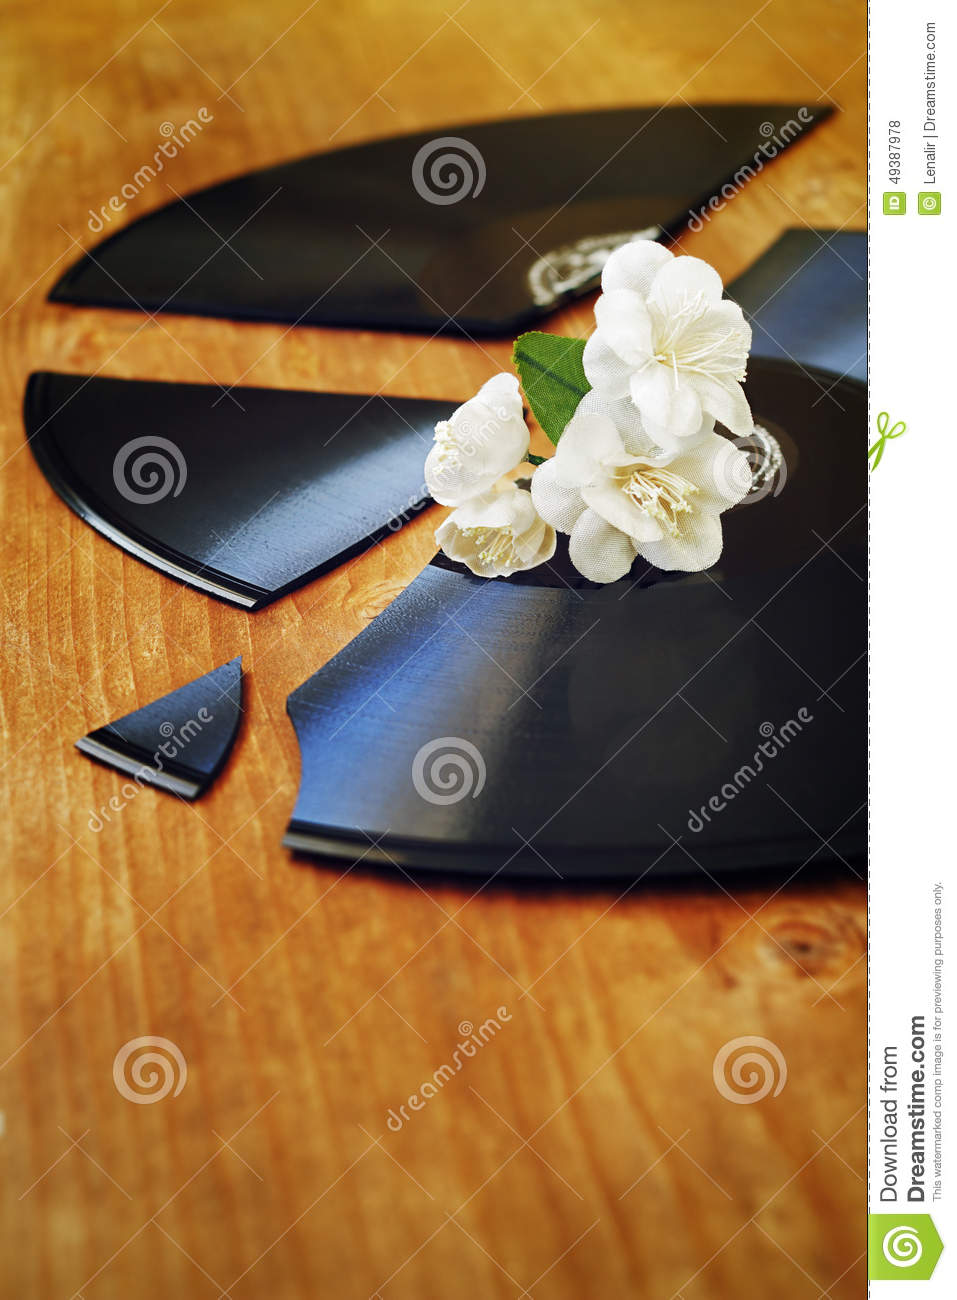 Artificial flowers on a record